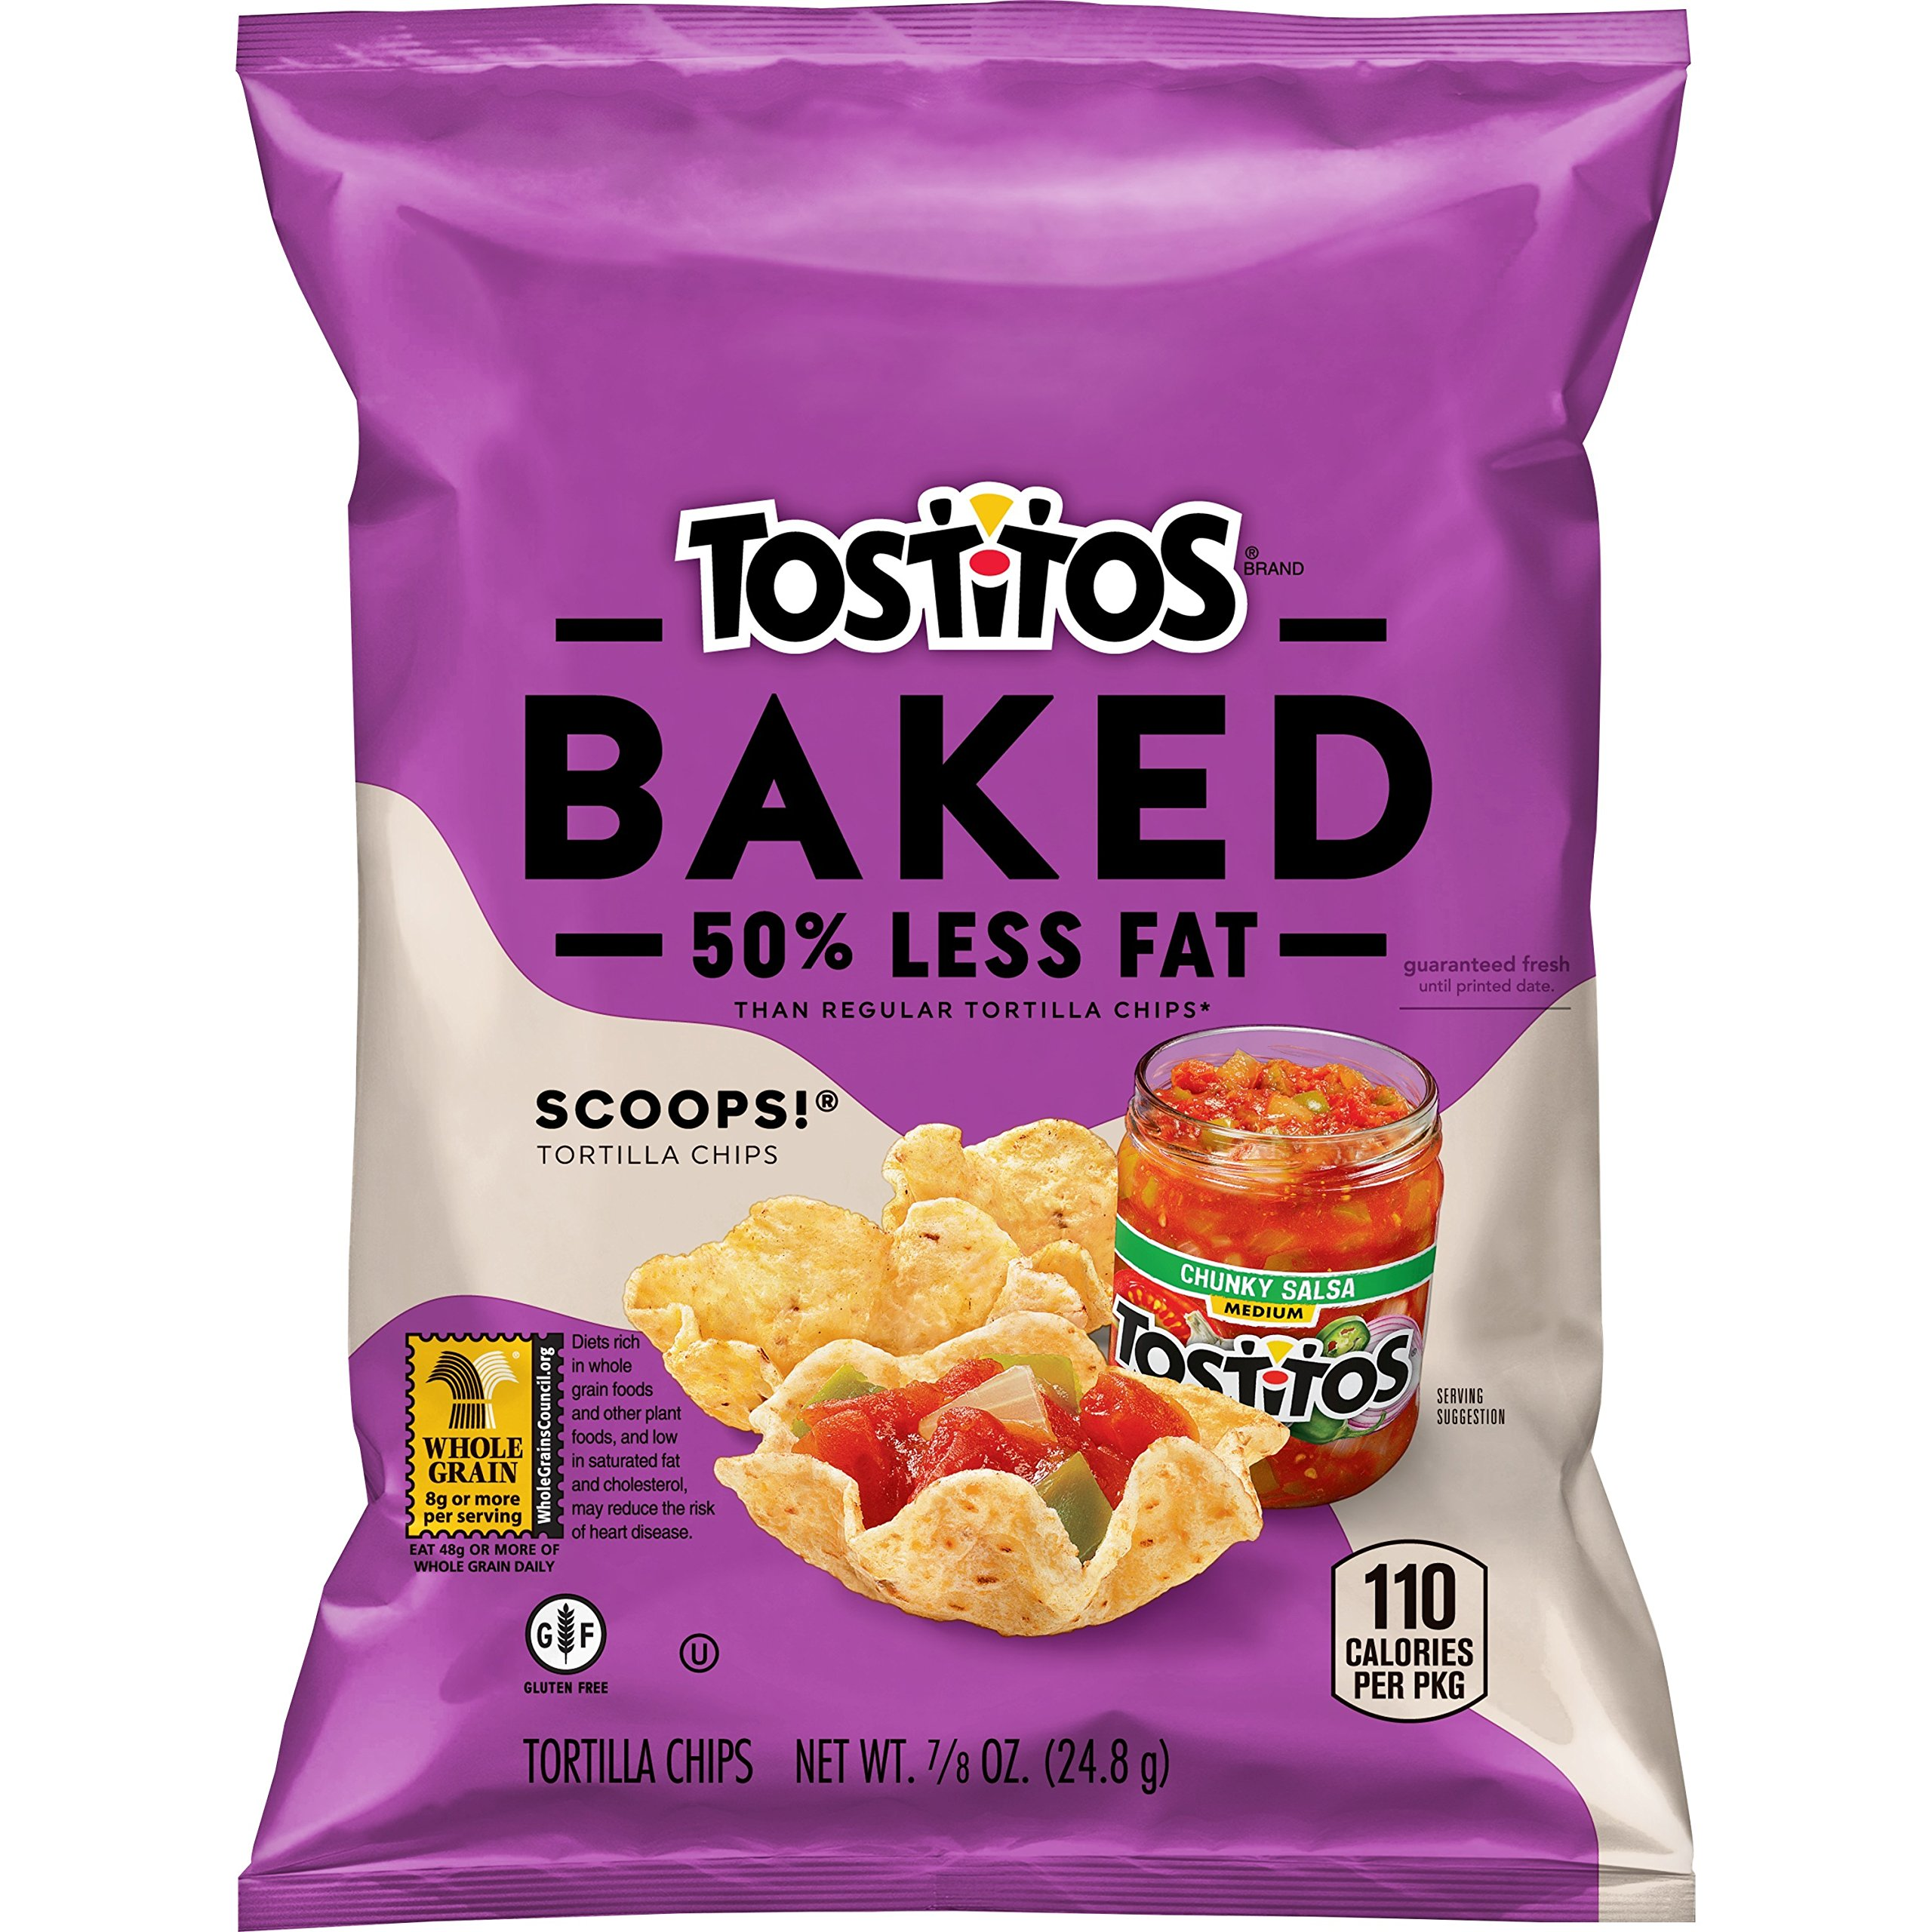 Baked Tostitos Oven Baked Scoops Tortilla Chips (Pack of 72) by Baked Tostitos